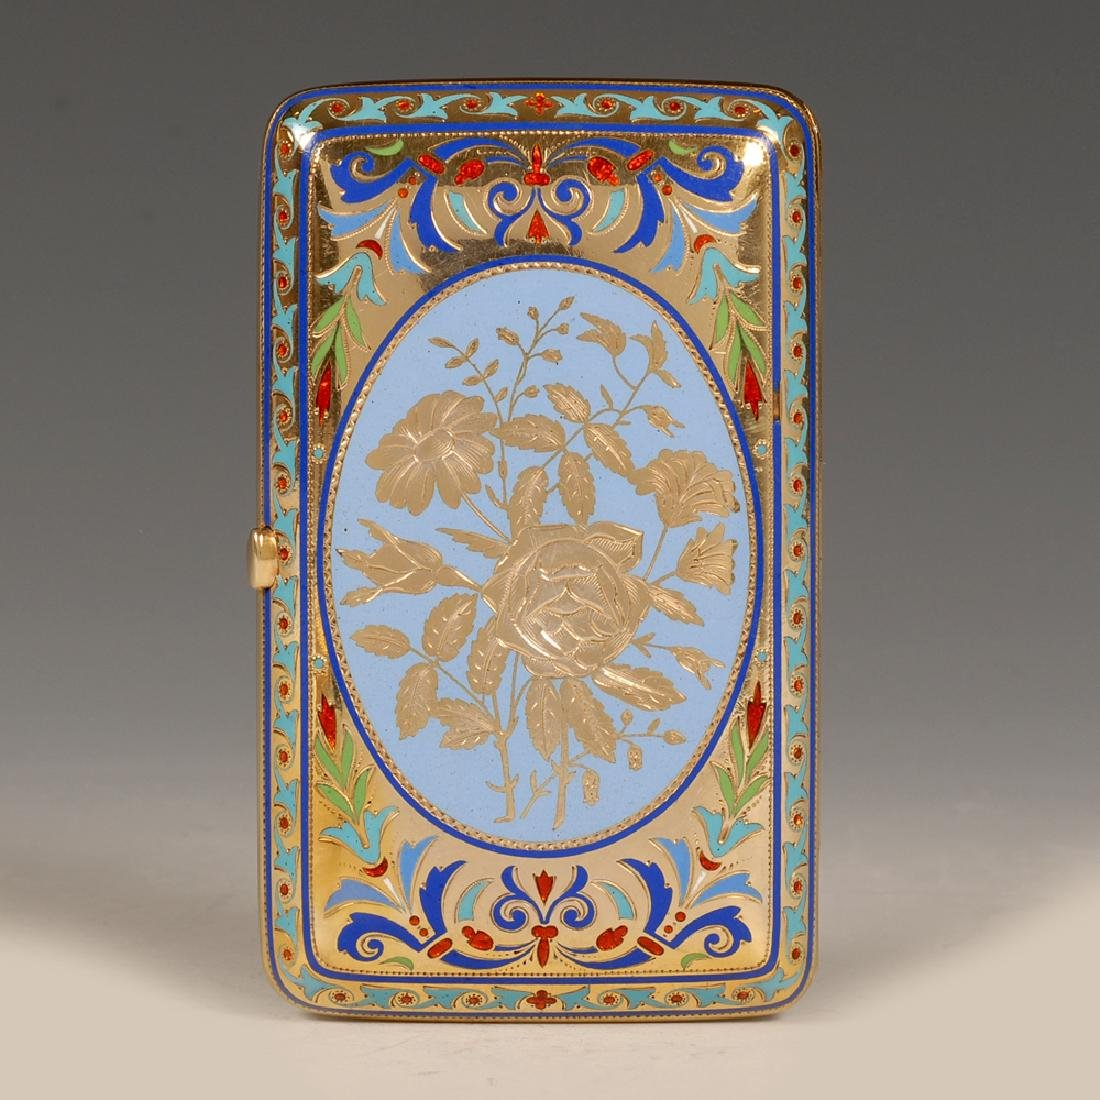 A Russian Grachev silver and enamel case